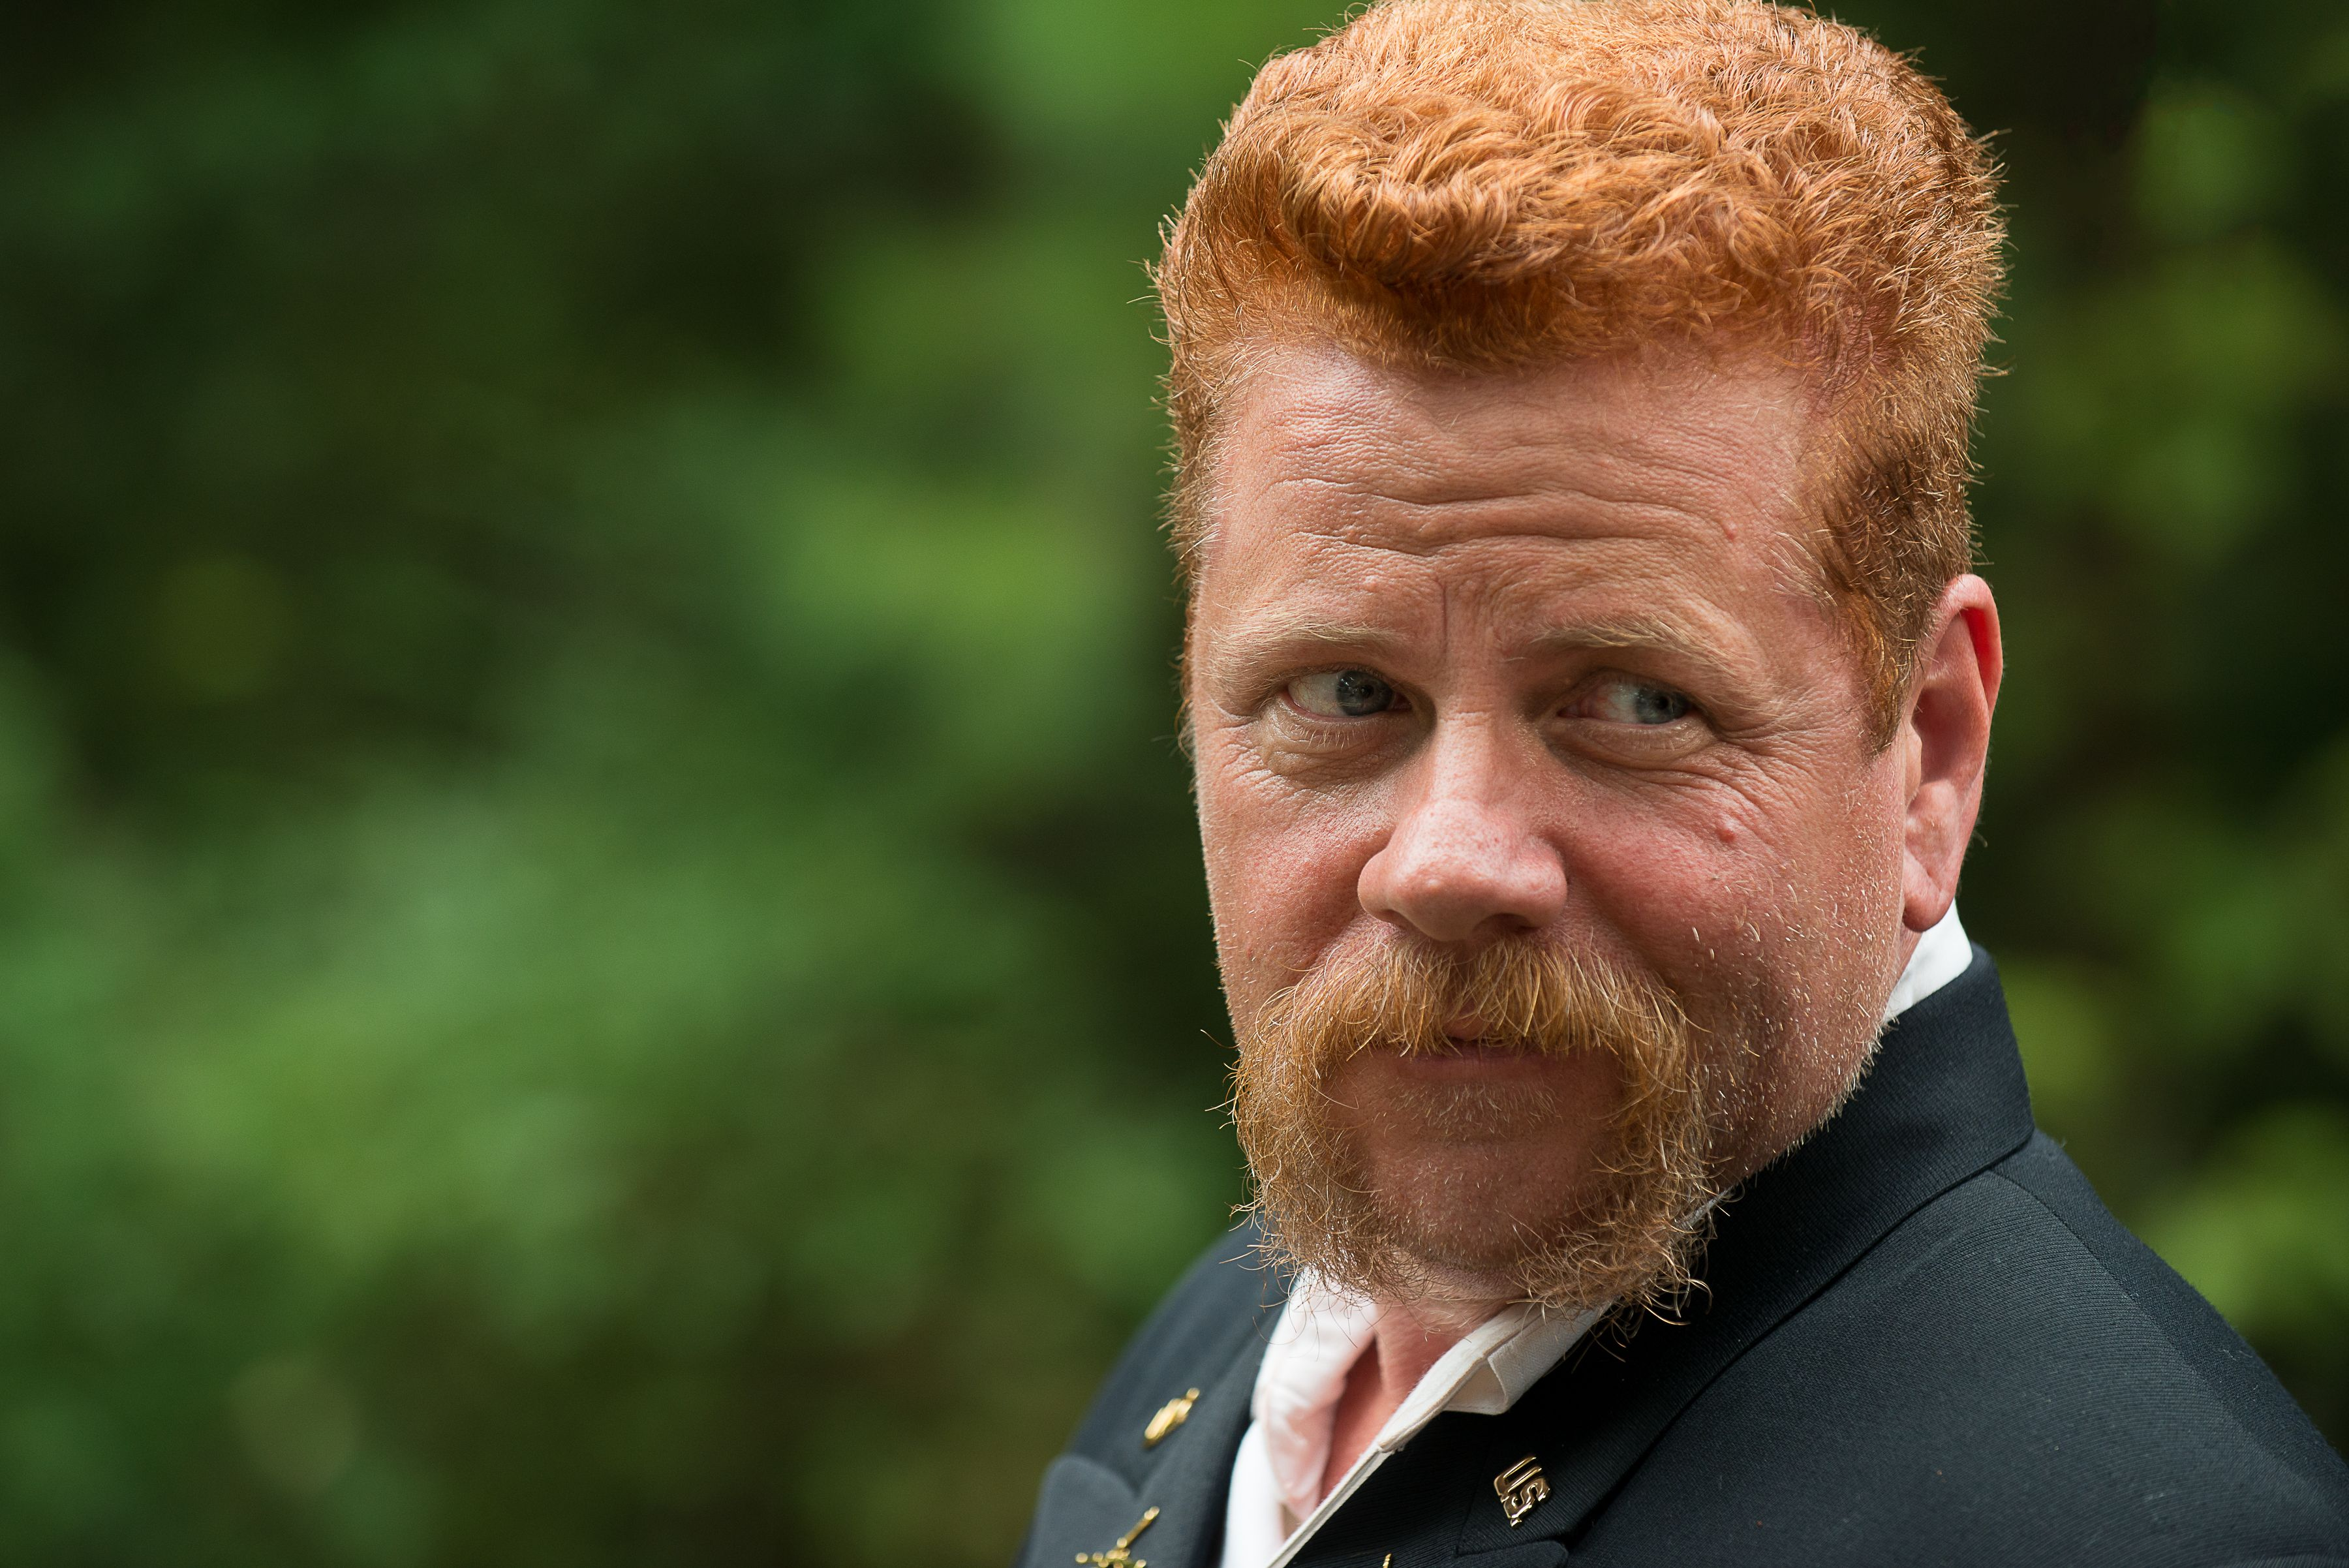 File:The-walking-dead-no-way-out-michael-cudlitz-image.jpg